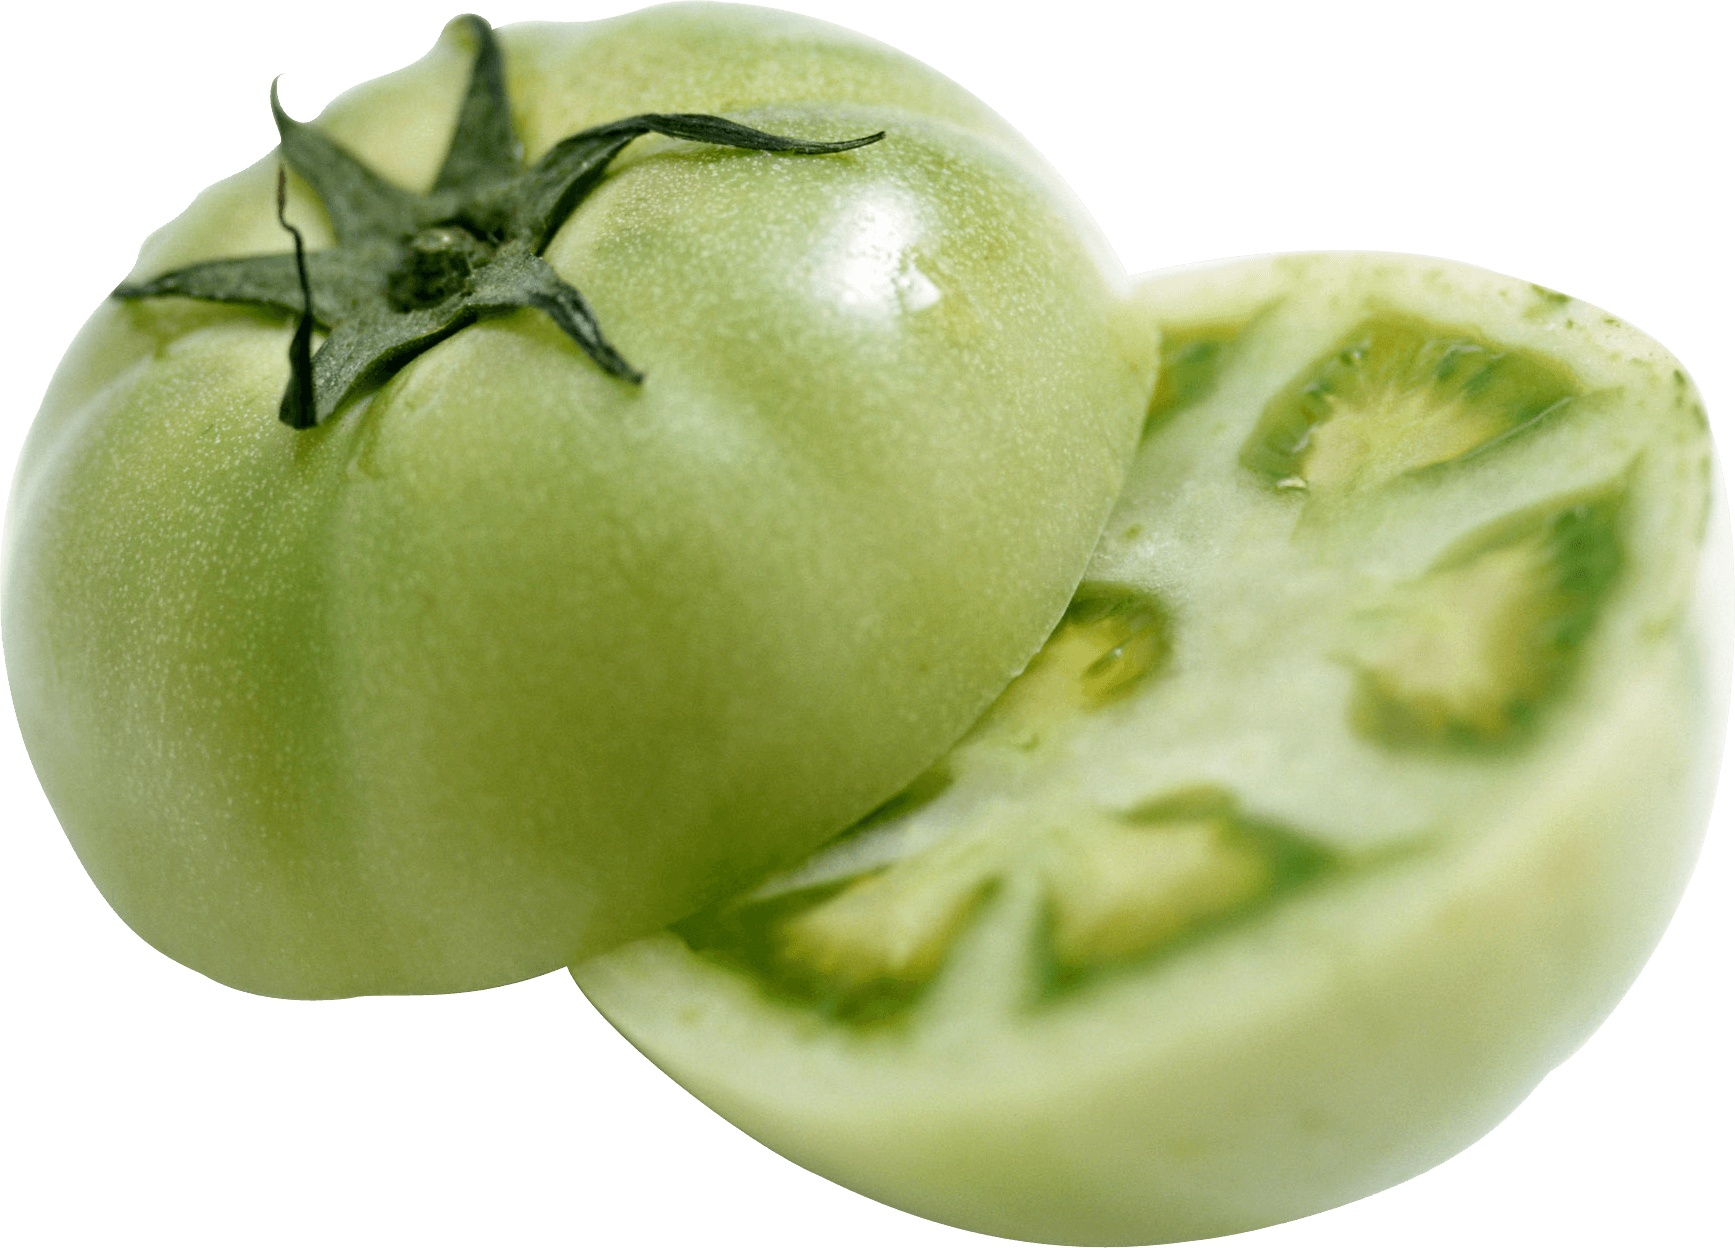 Green Tomato Png Image PNG Image